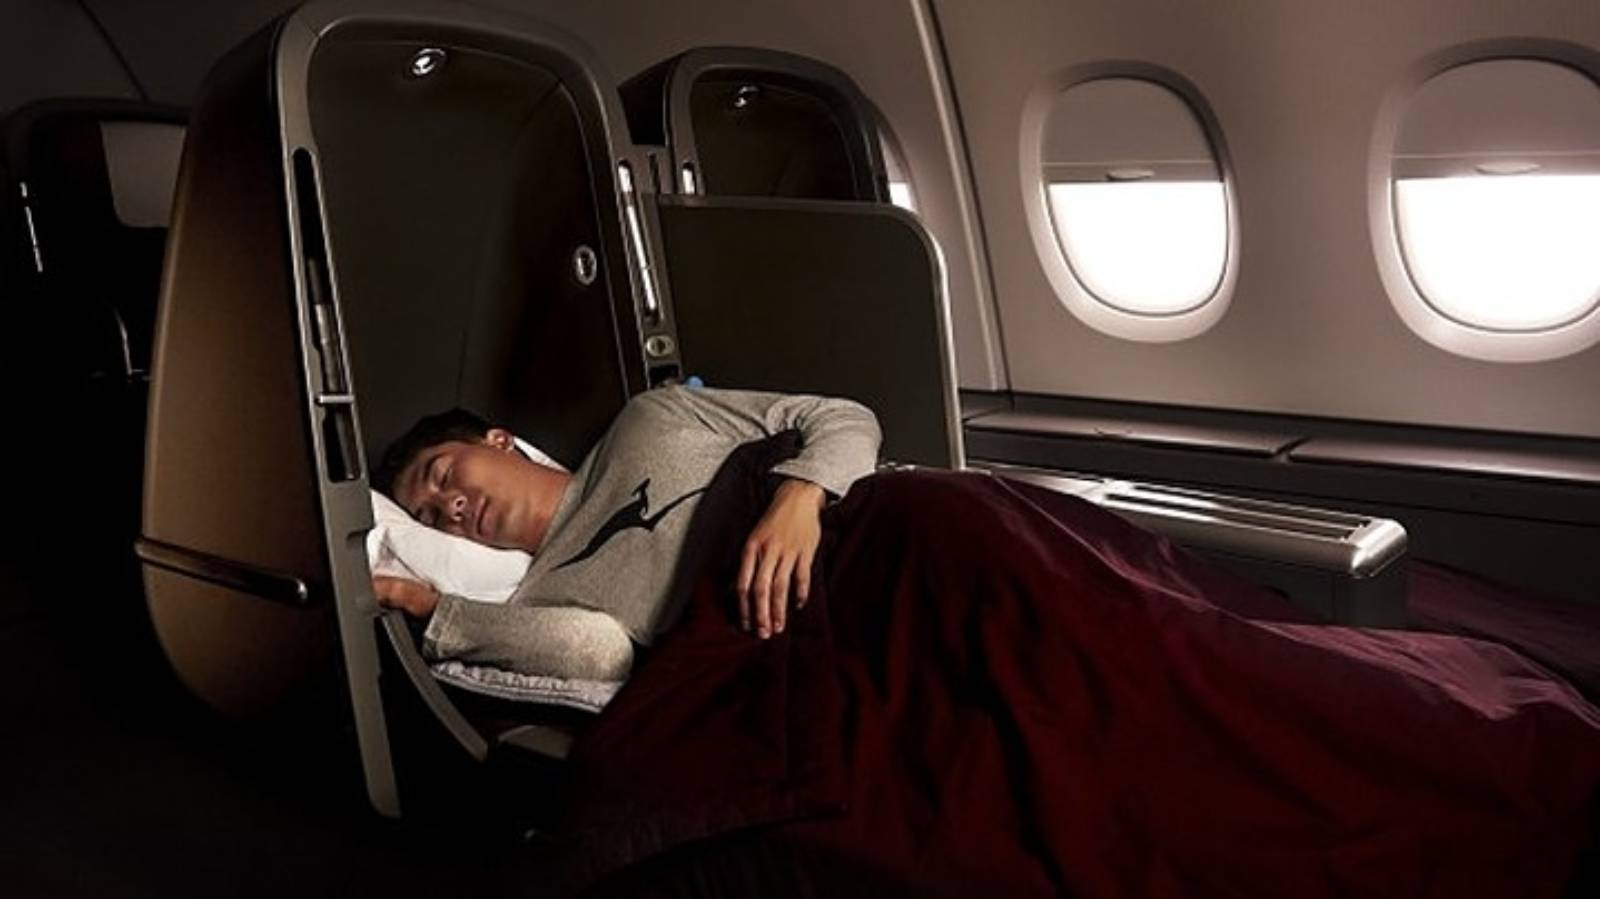 Qantas auctions off Airbus A380 business class seats